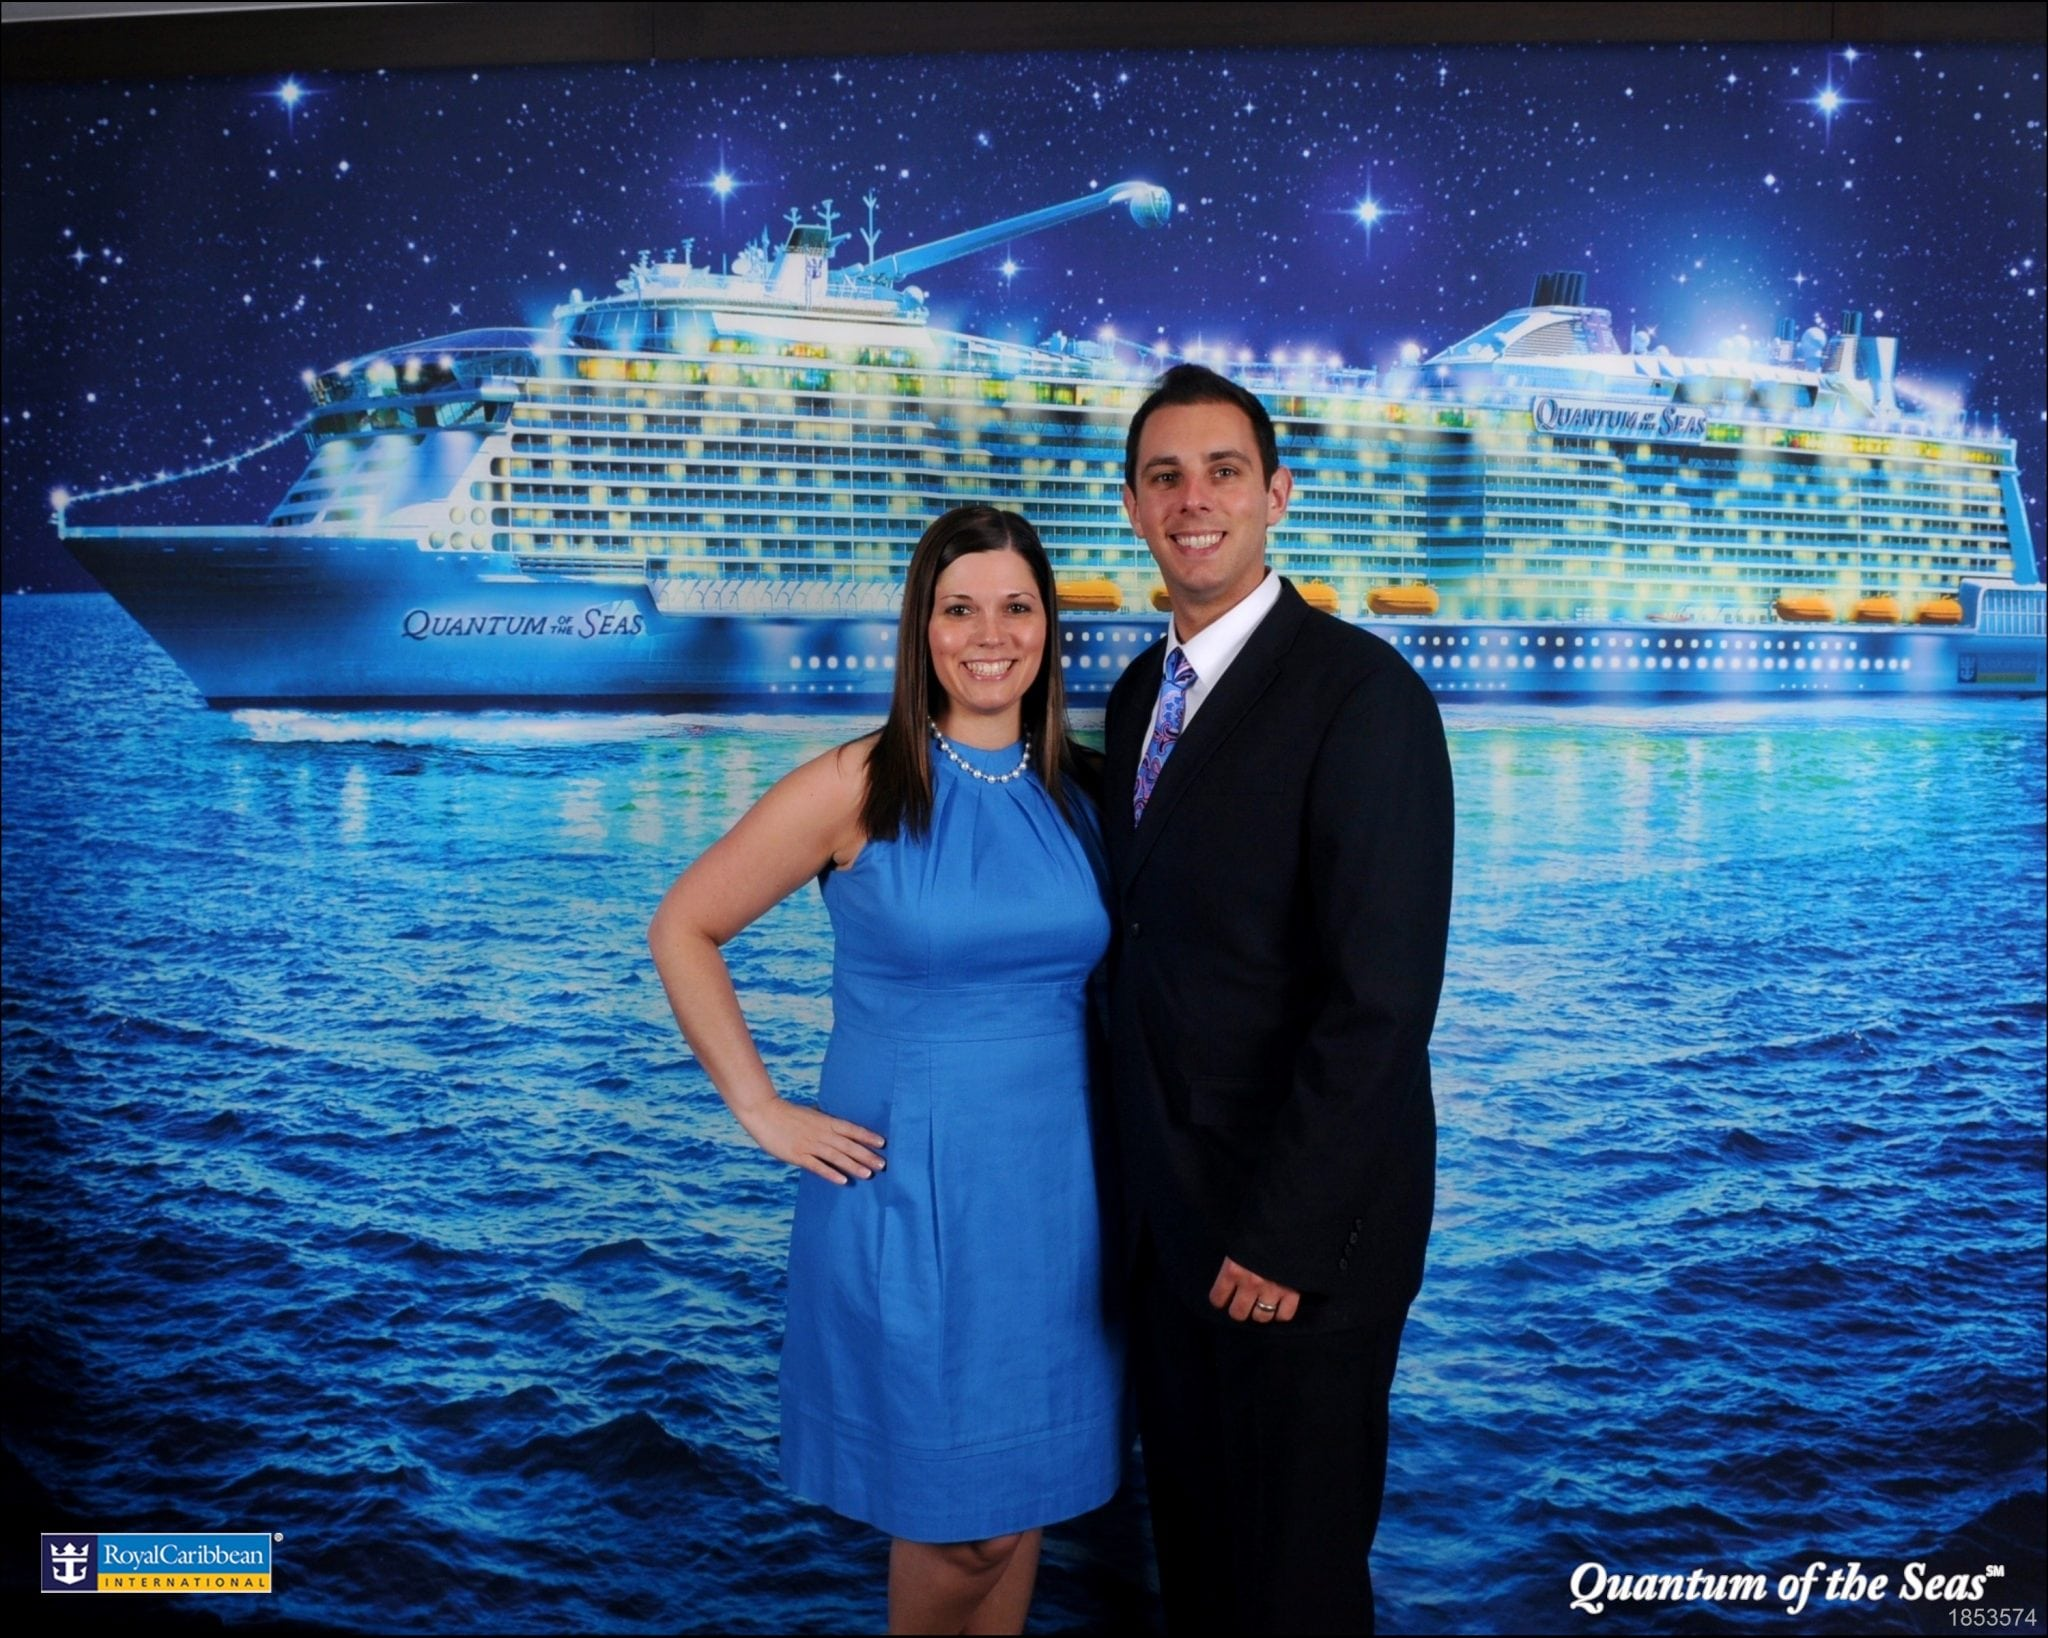 Formal Photo On Quantum Of The Seas Eatsleepcruise Com